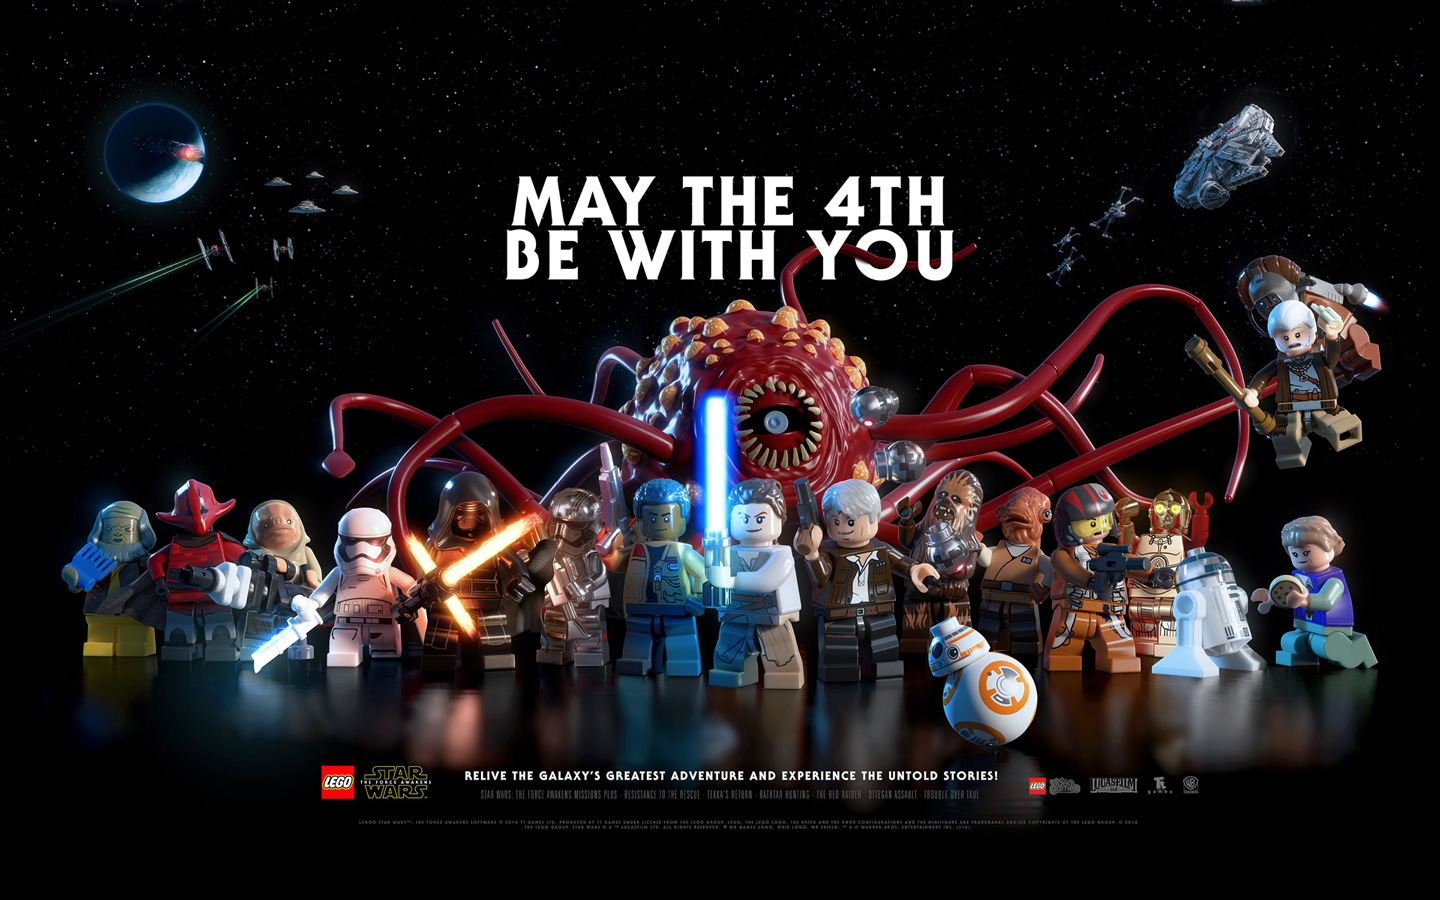 Lego Star Wars: The Force Awakens Wallpaper in 1440x900